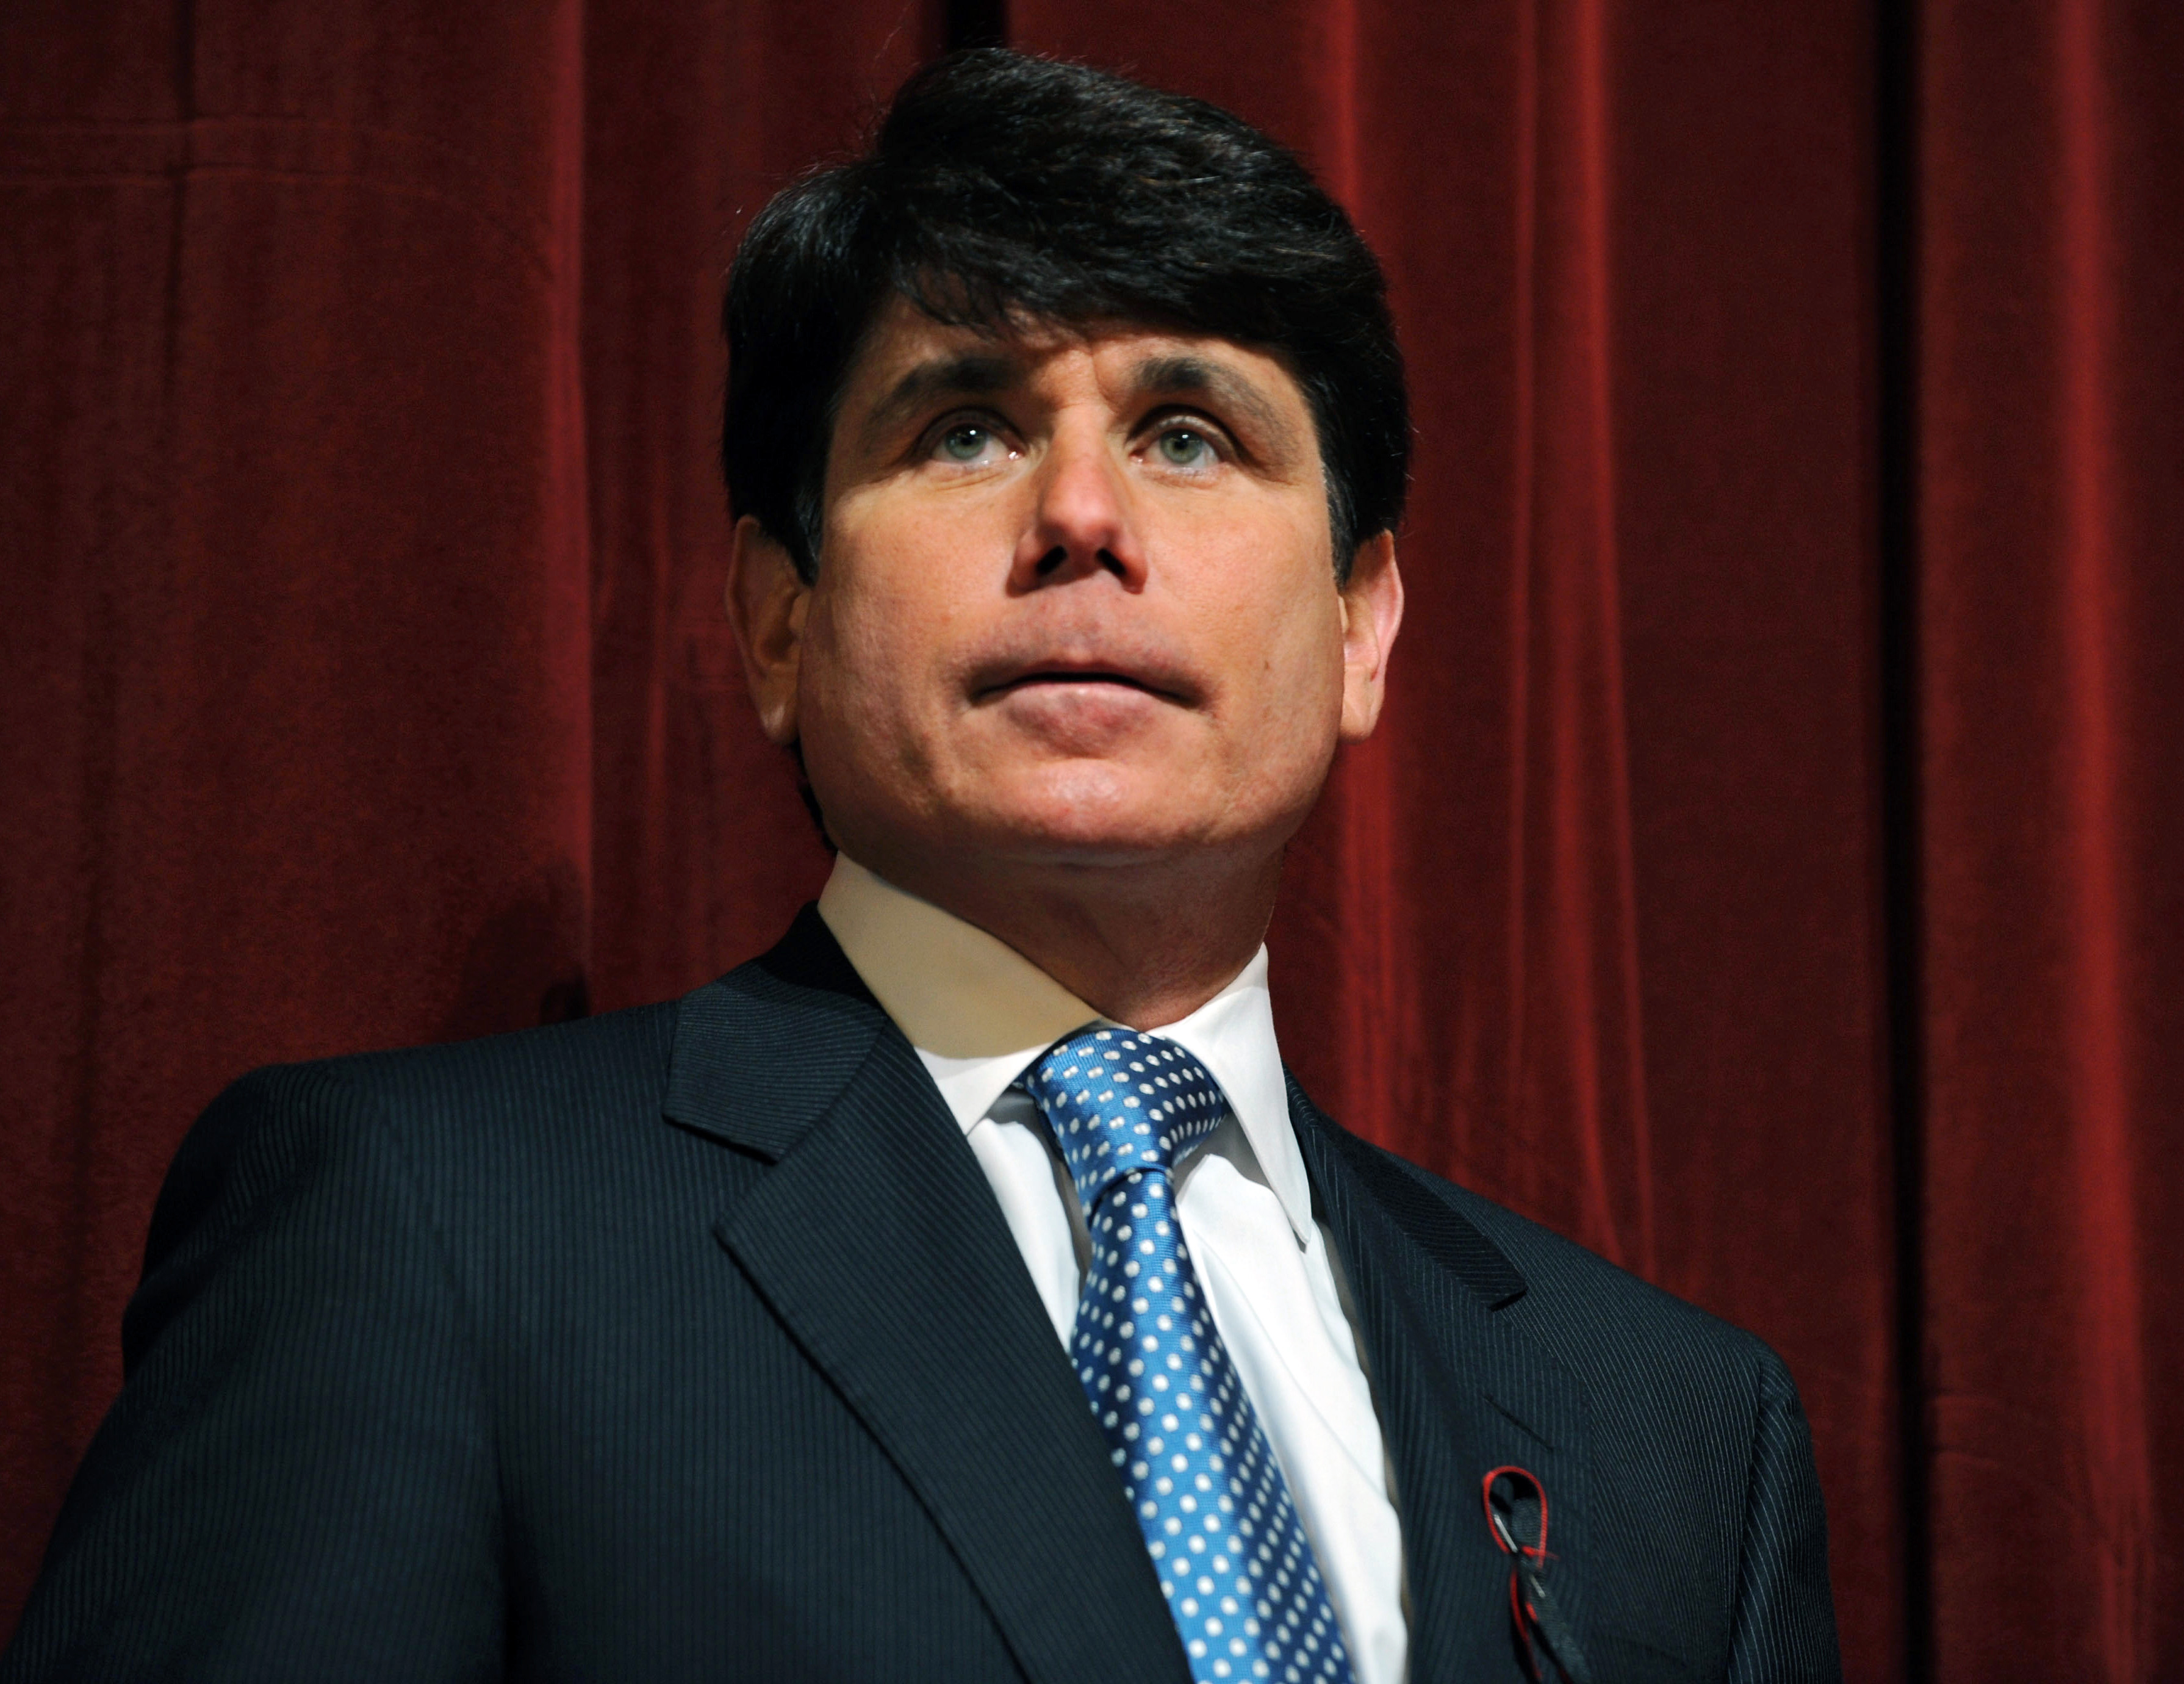 Trump commutes Blagojevich's sentence and grants clemency to 10 others